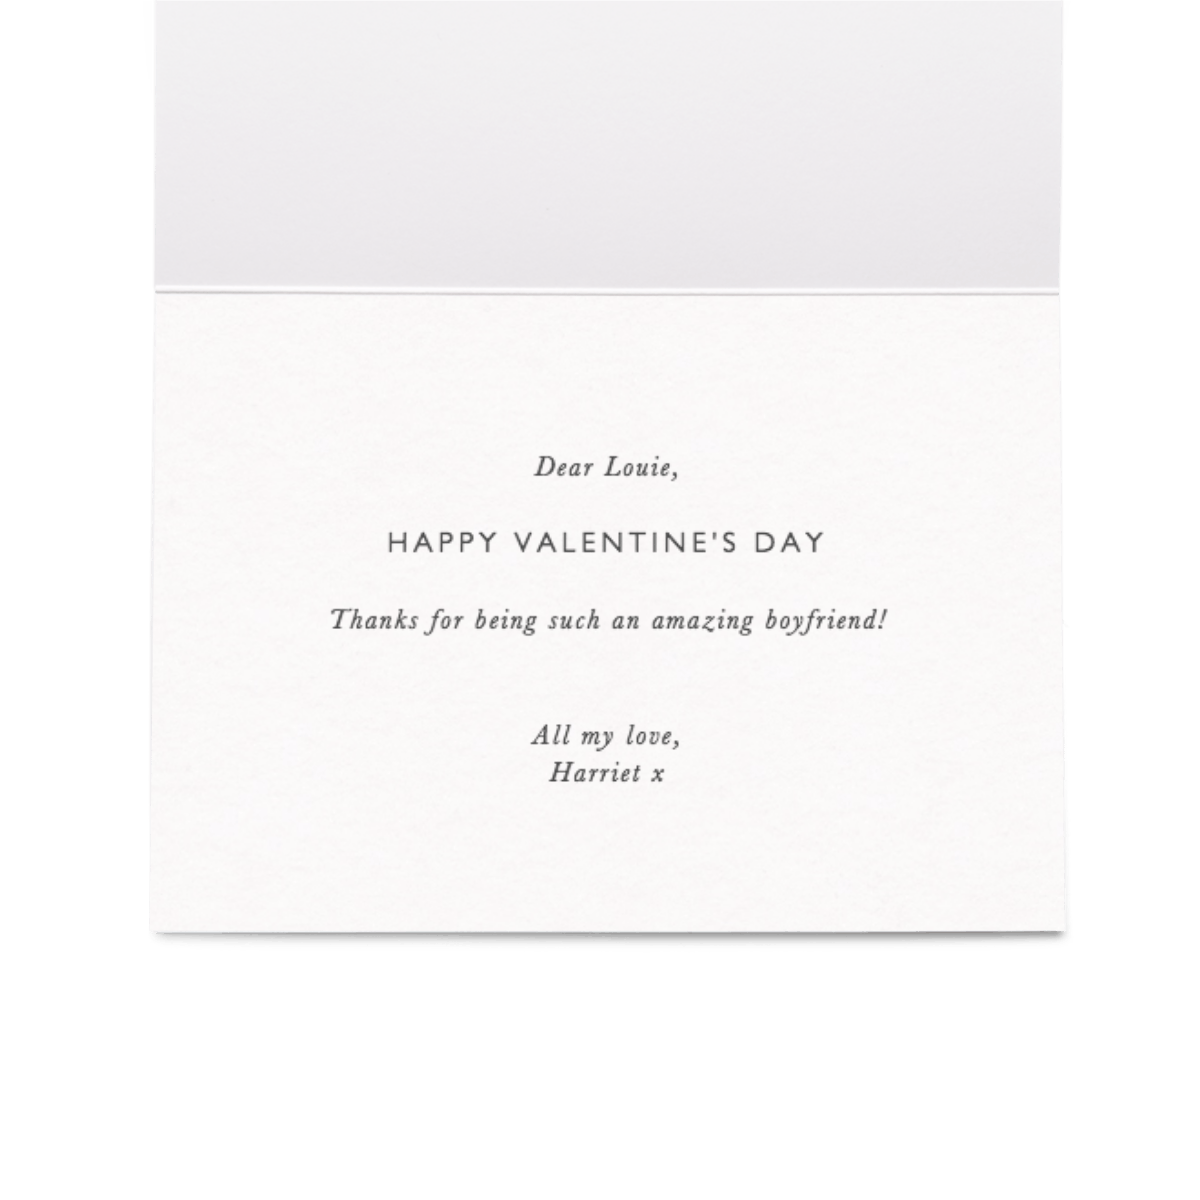 Https%3a%2f%2fwww.papier.com%2fproduct image%2f17269%2f20%2fhappy valentine s day calligraphy 4536 inside 1485521963.png?ixlib=rb 1.1